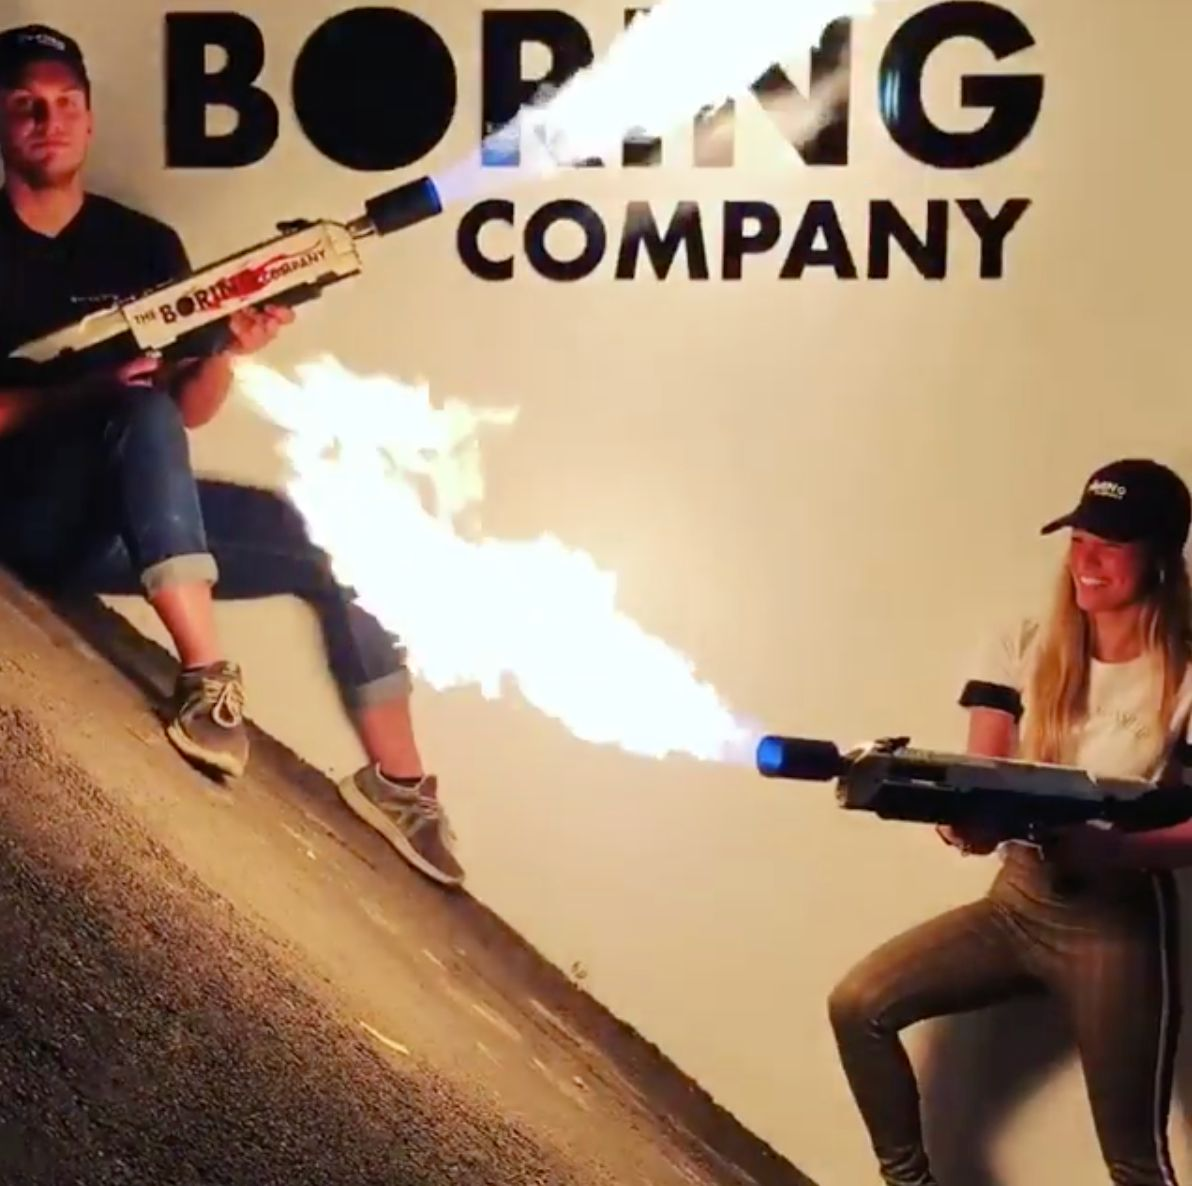 The Boring Co. flamethrowers emit a flame less than the 10 feet that would qualify them under federal...